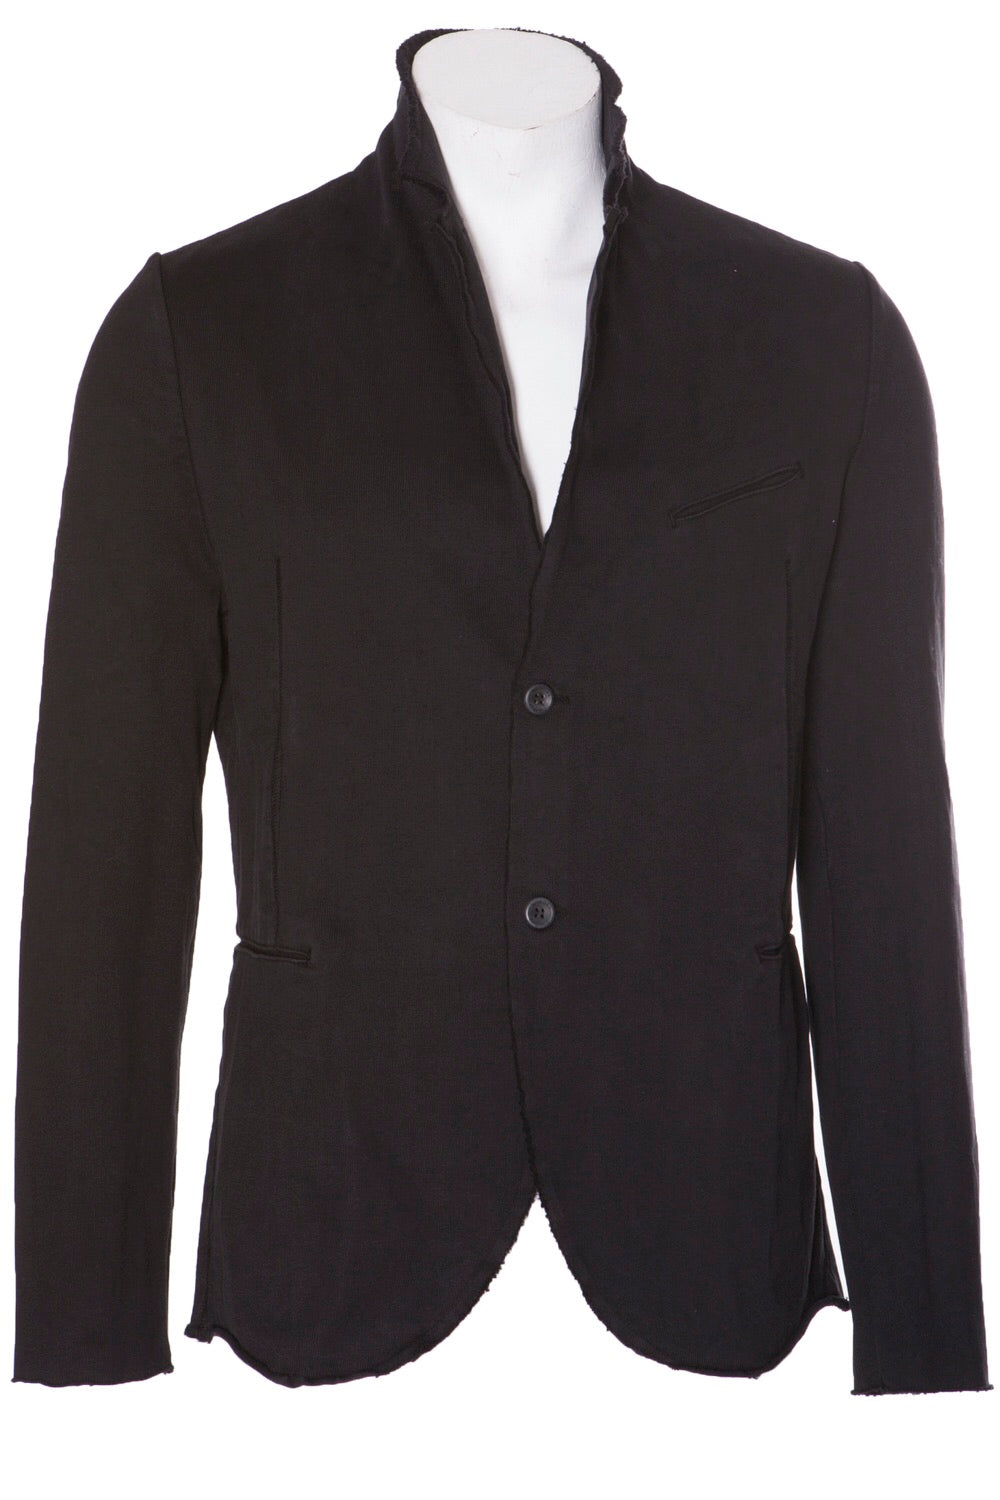 Hannes Roether Black Sports Jacket